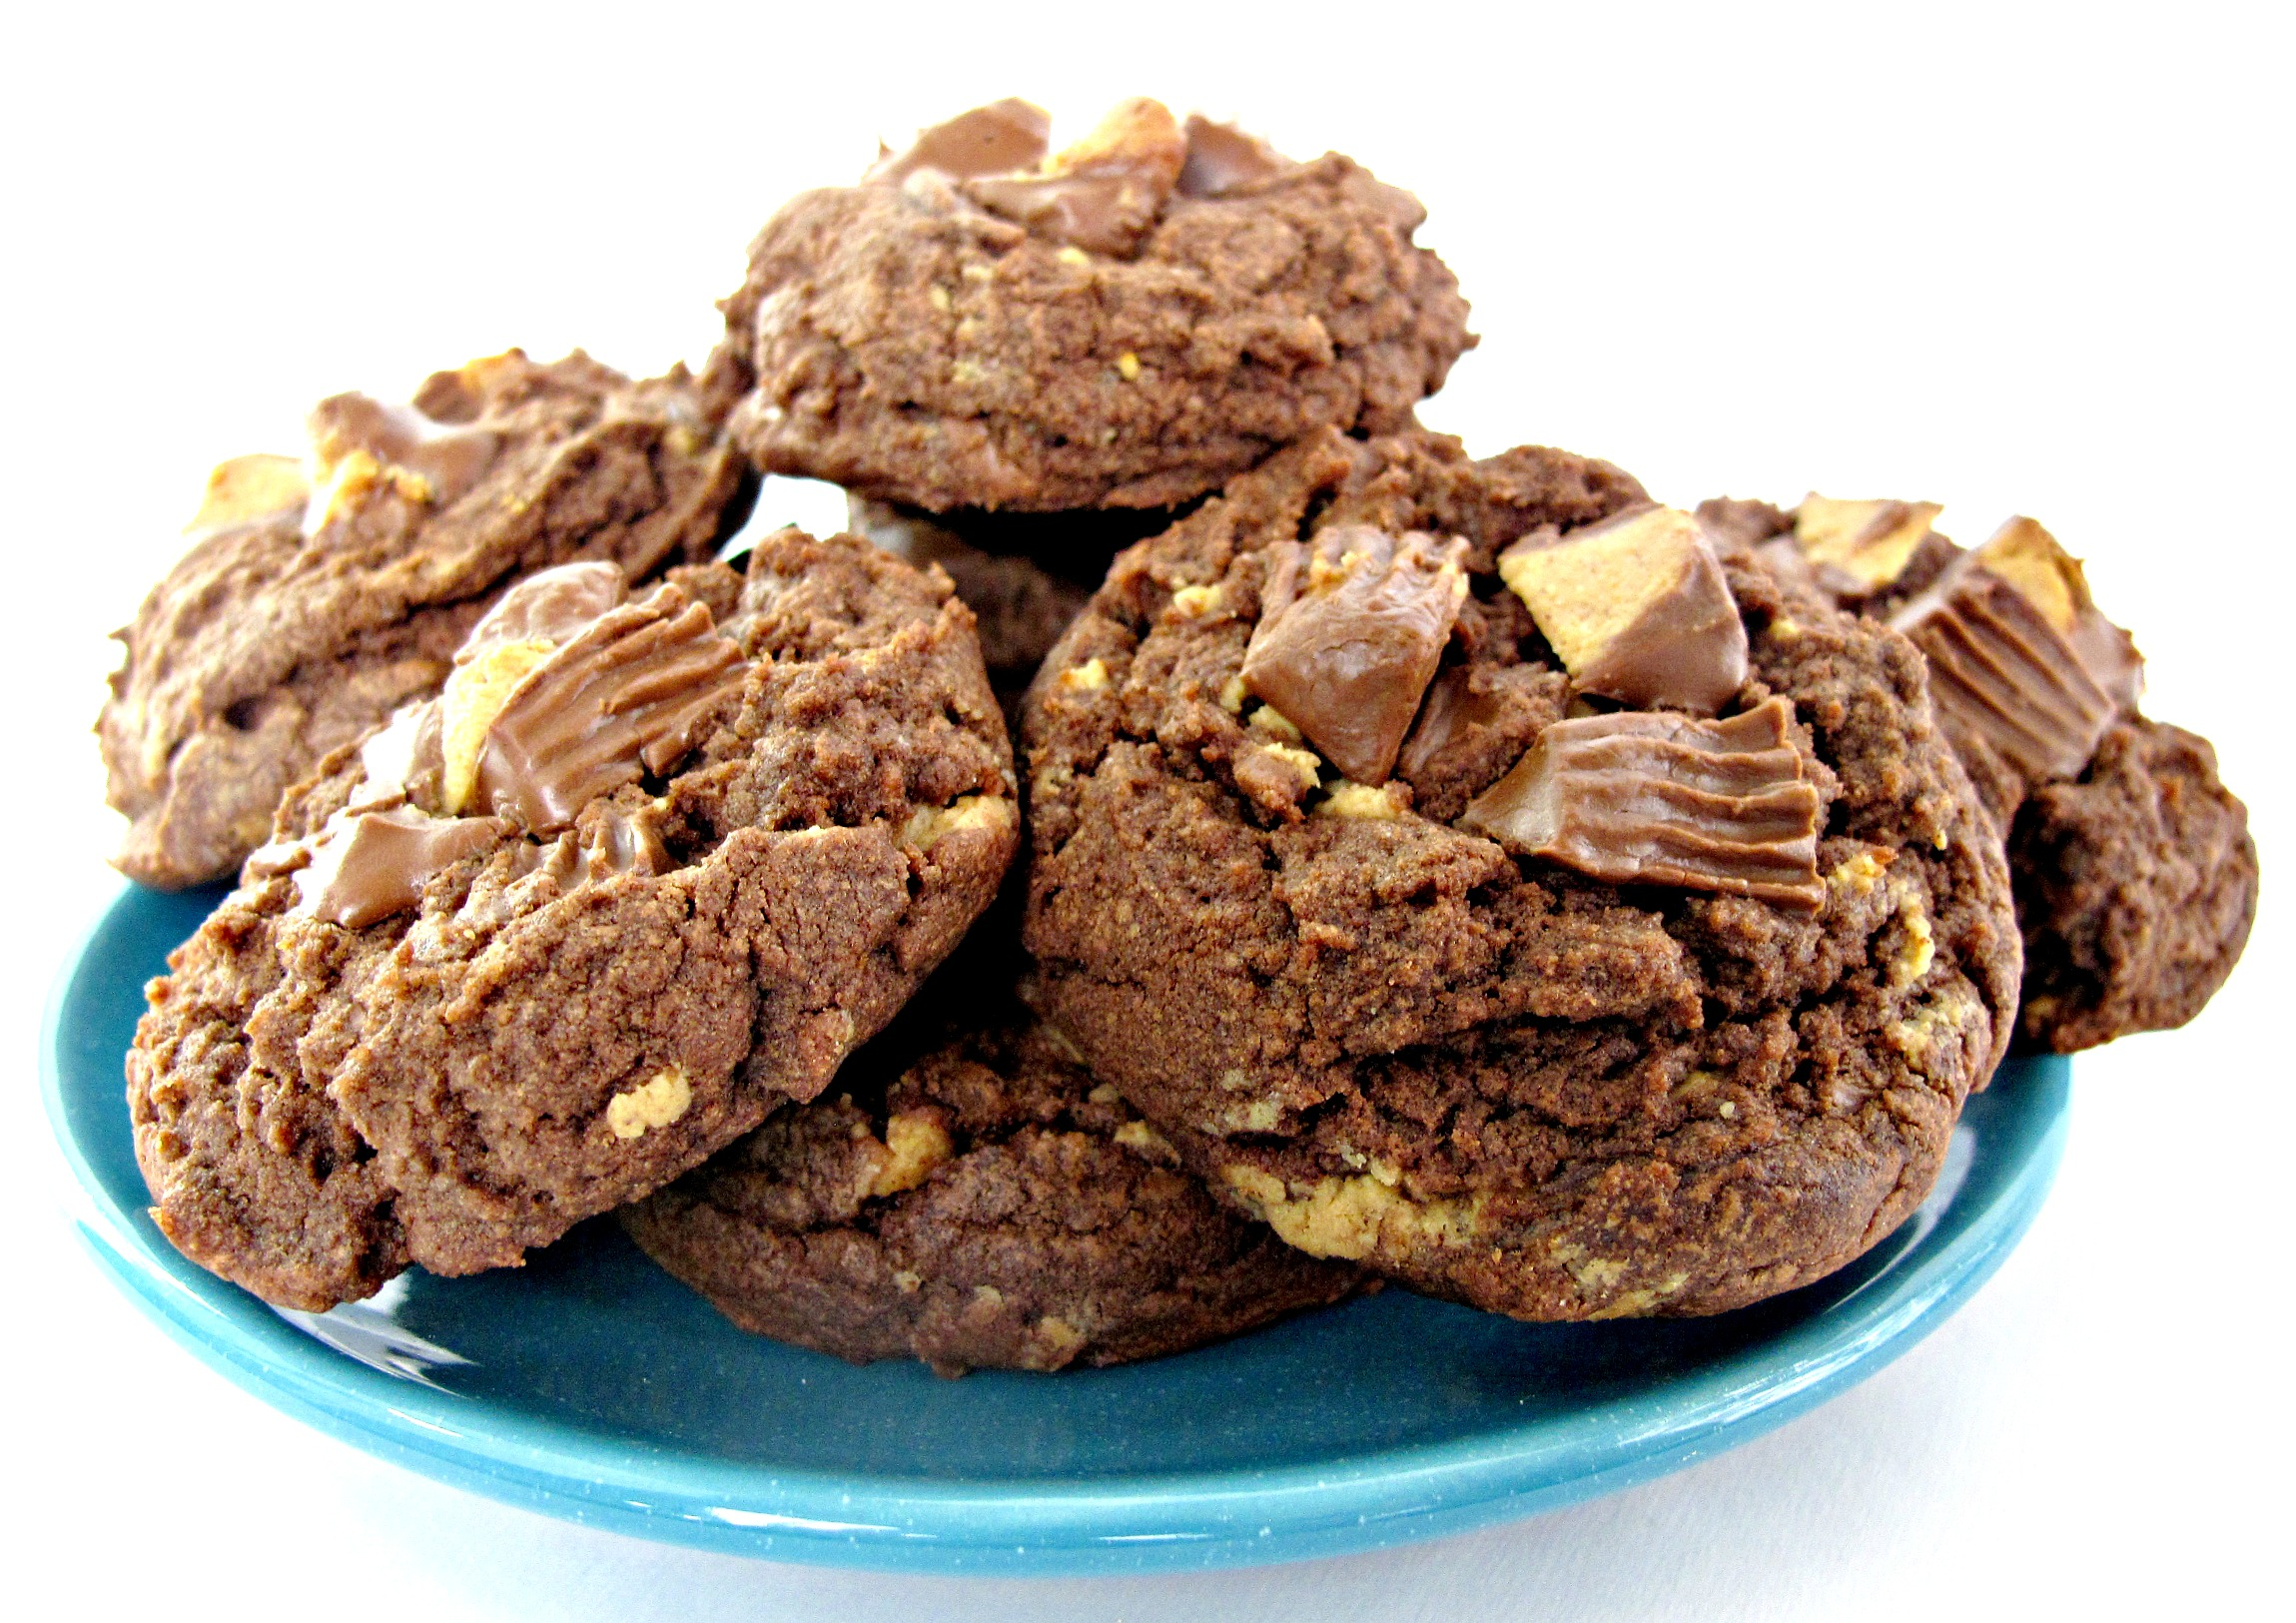 Chocolate Peanut Butter Cup Cookies - The Monday Box